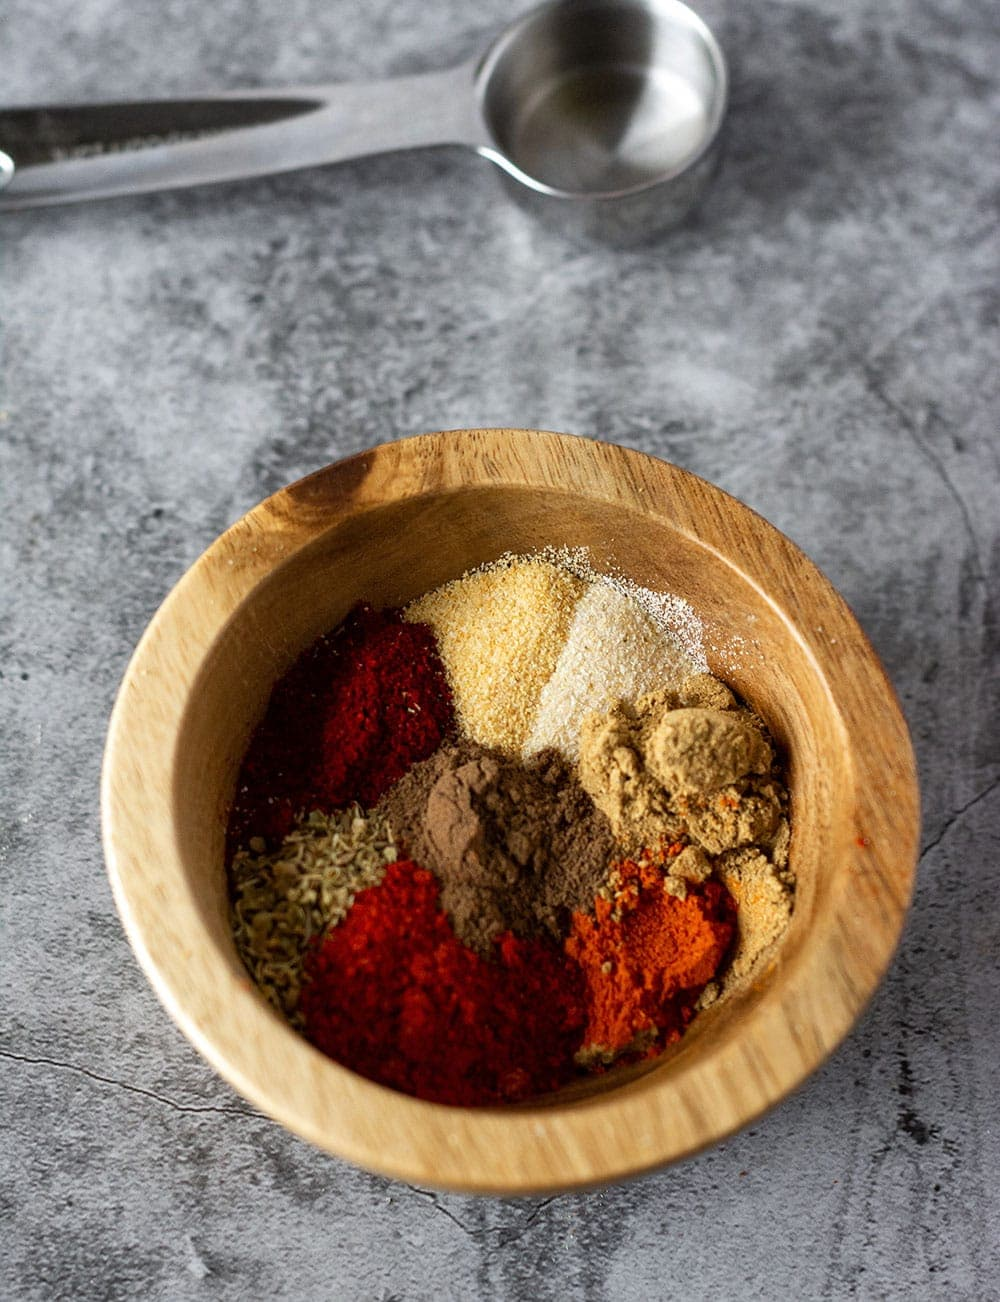 chili powder in wooden bowl